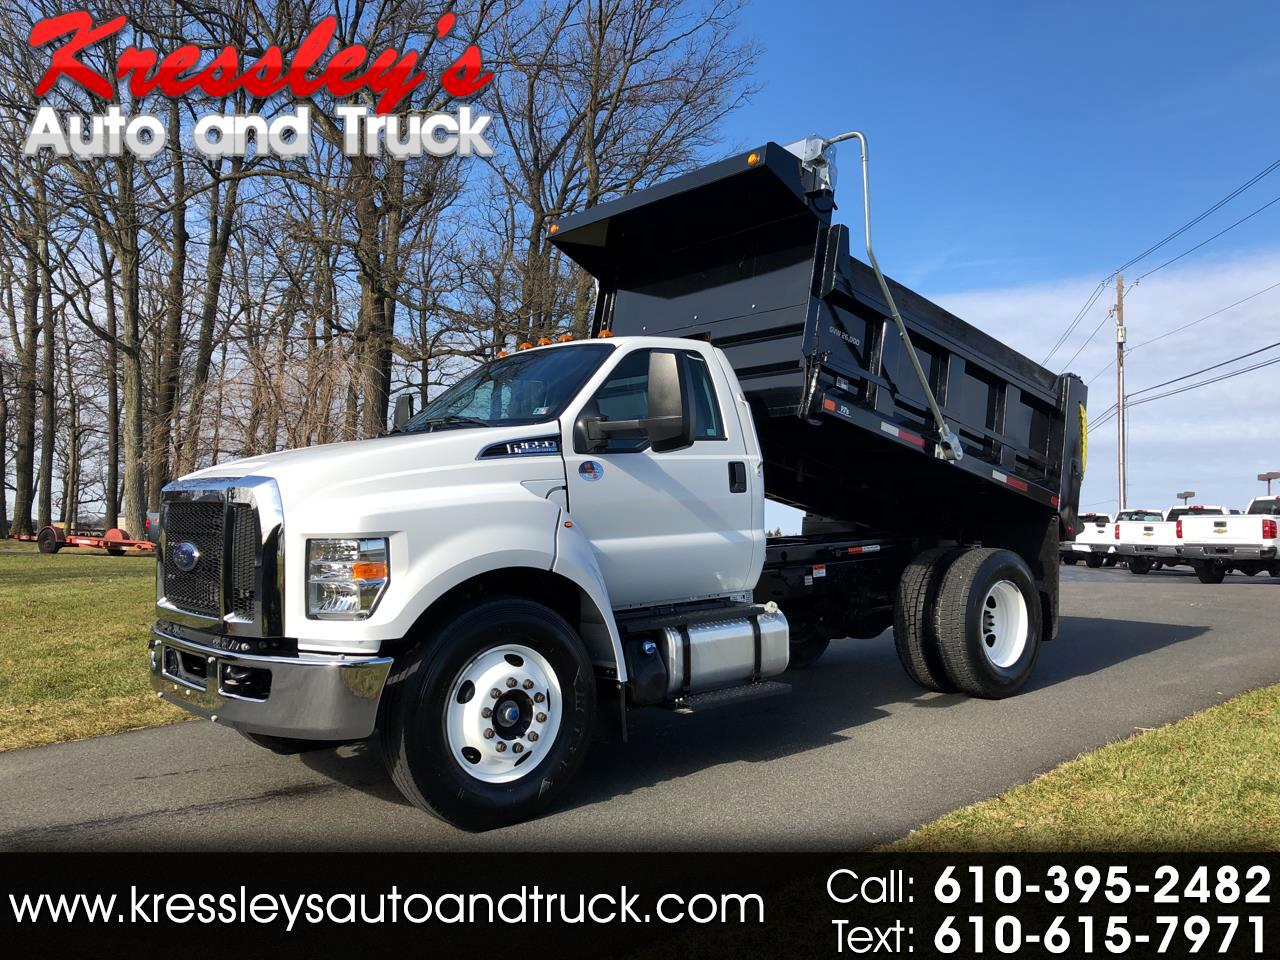 2018 Ford Super Duty F-650 Straight Frame Reg Cab